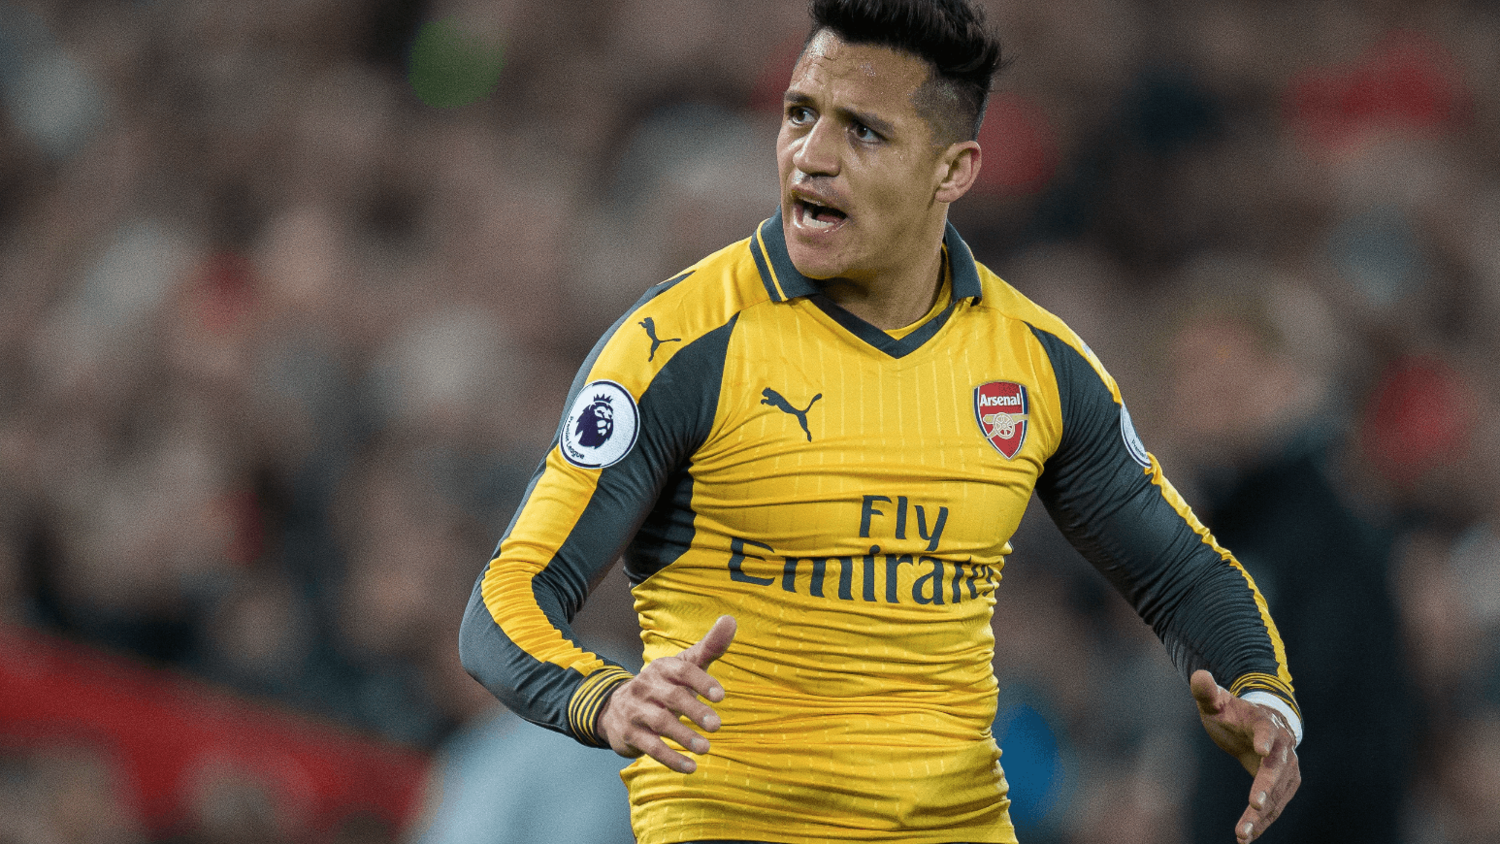 Alexis Sanchez and Wenger to Trigger Arsenal Downfall?